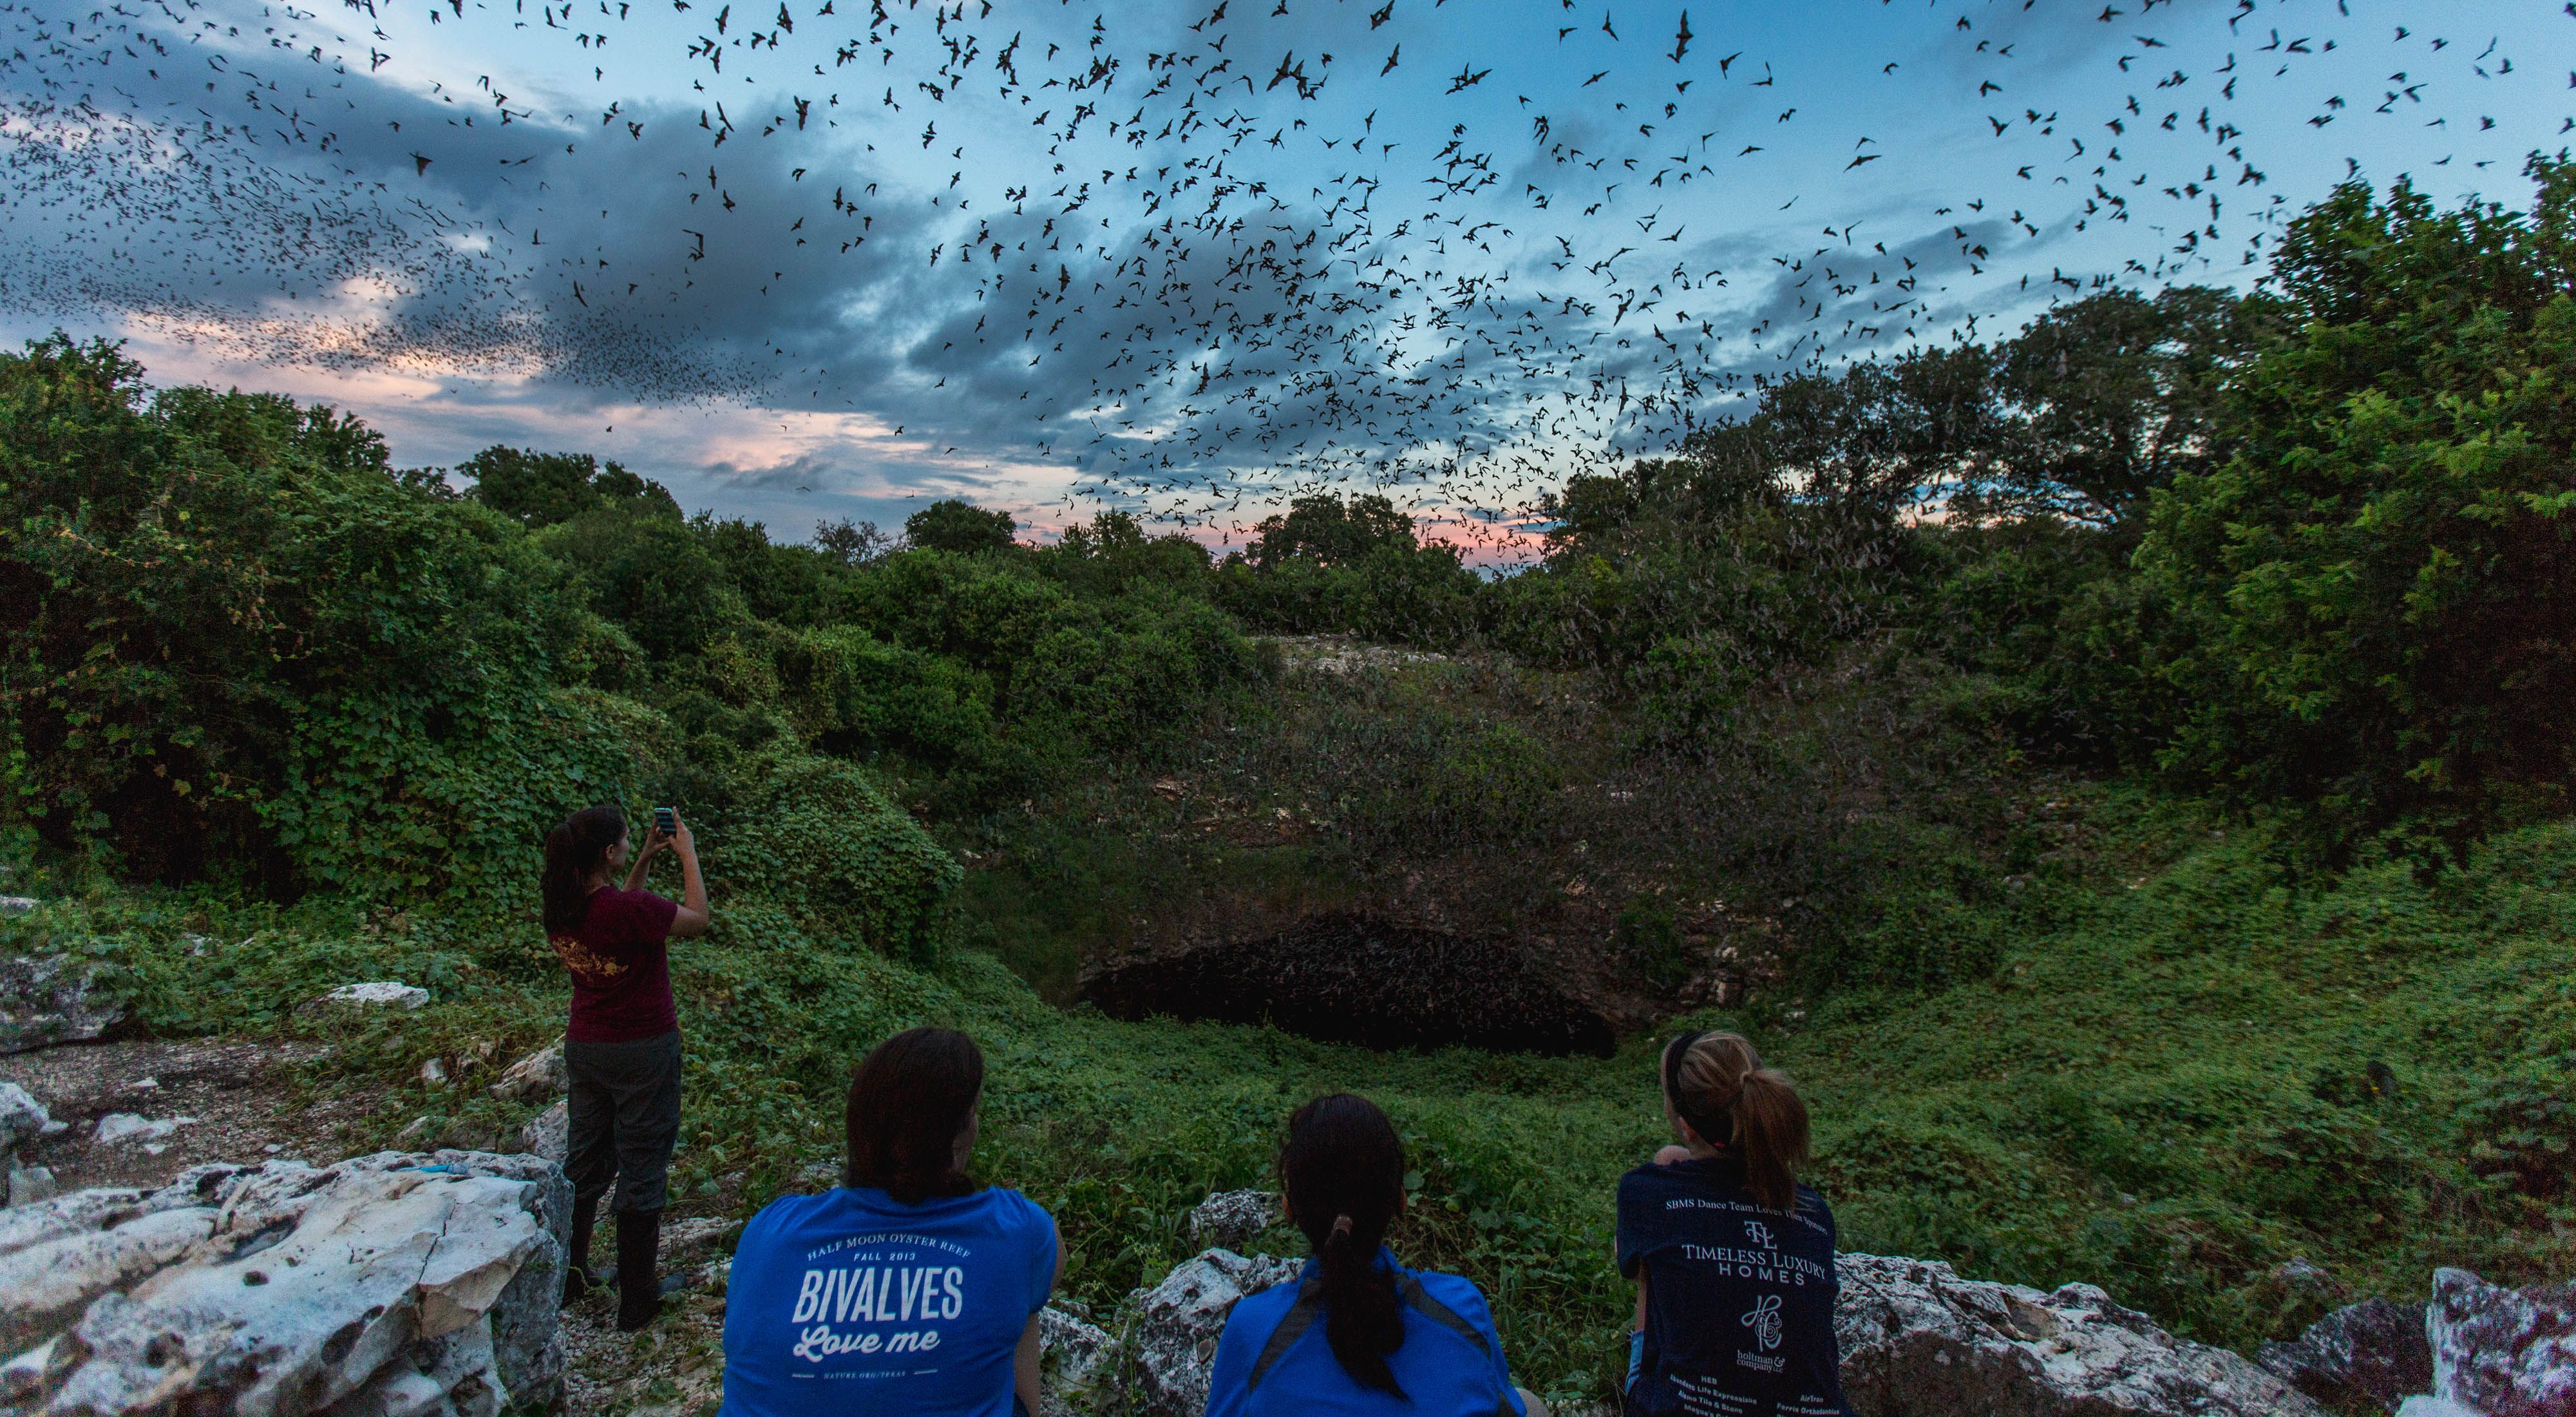 Thousands of bats emerge from a dark cave entrance surrounded by vines as a group of people watch ant take photos.